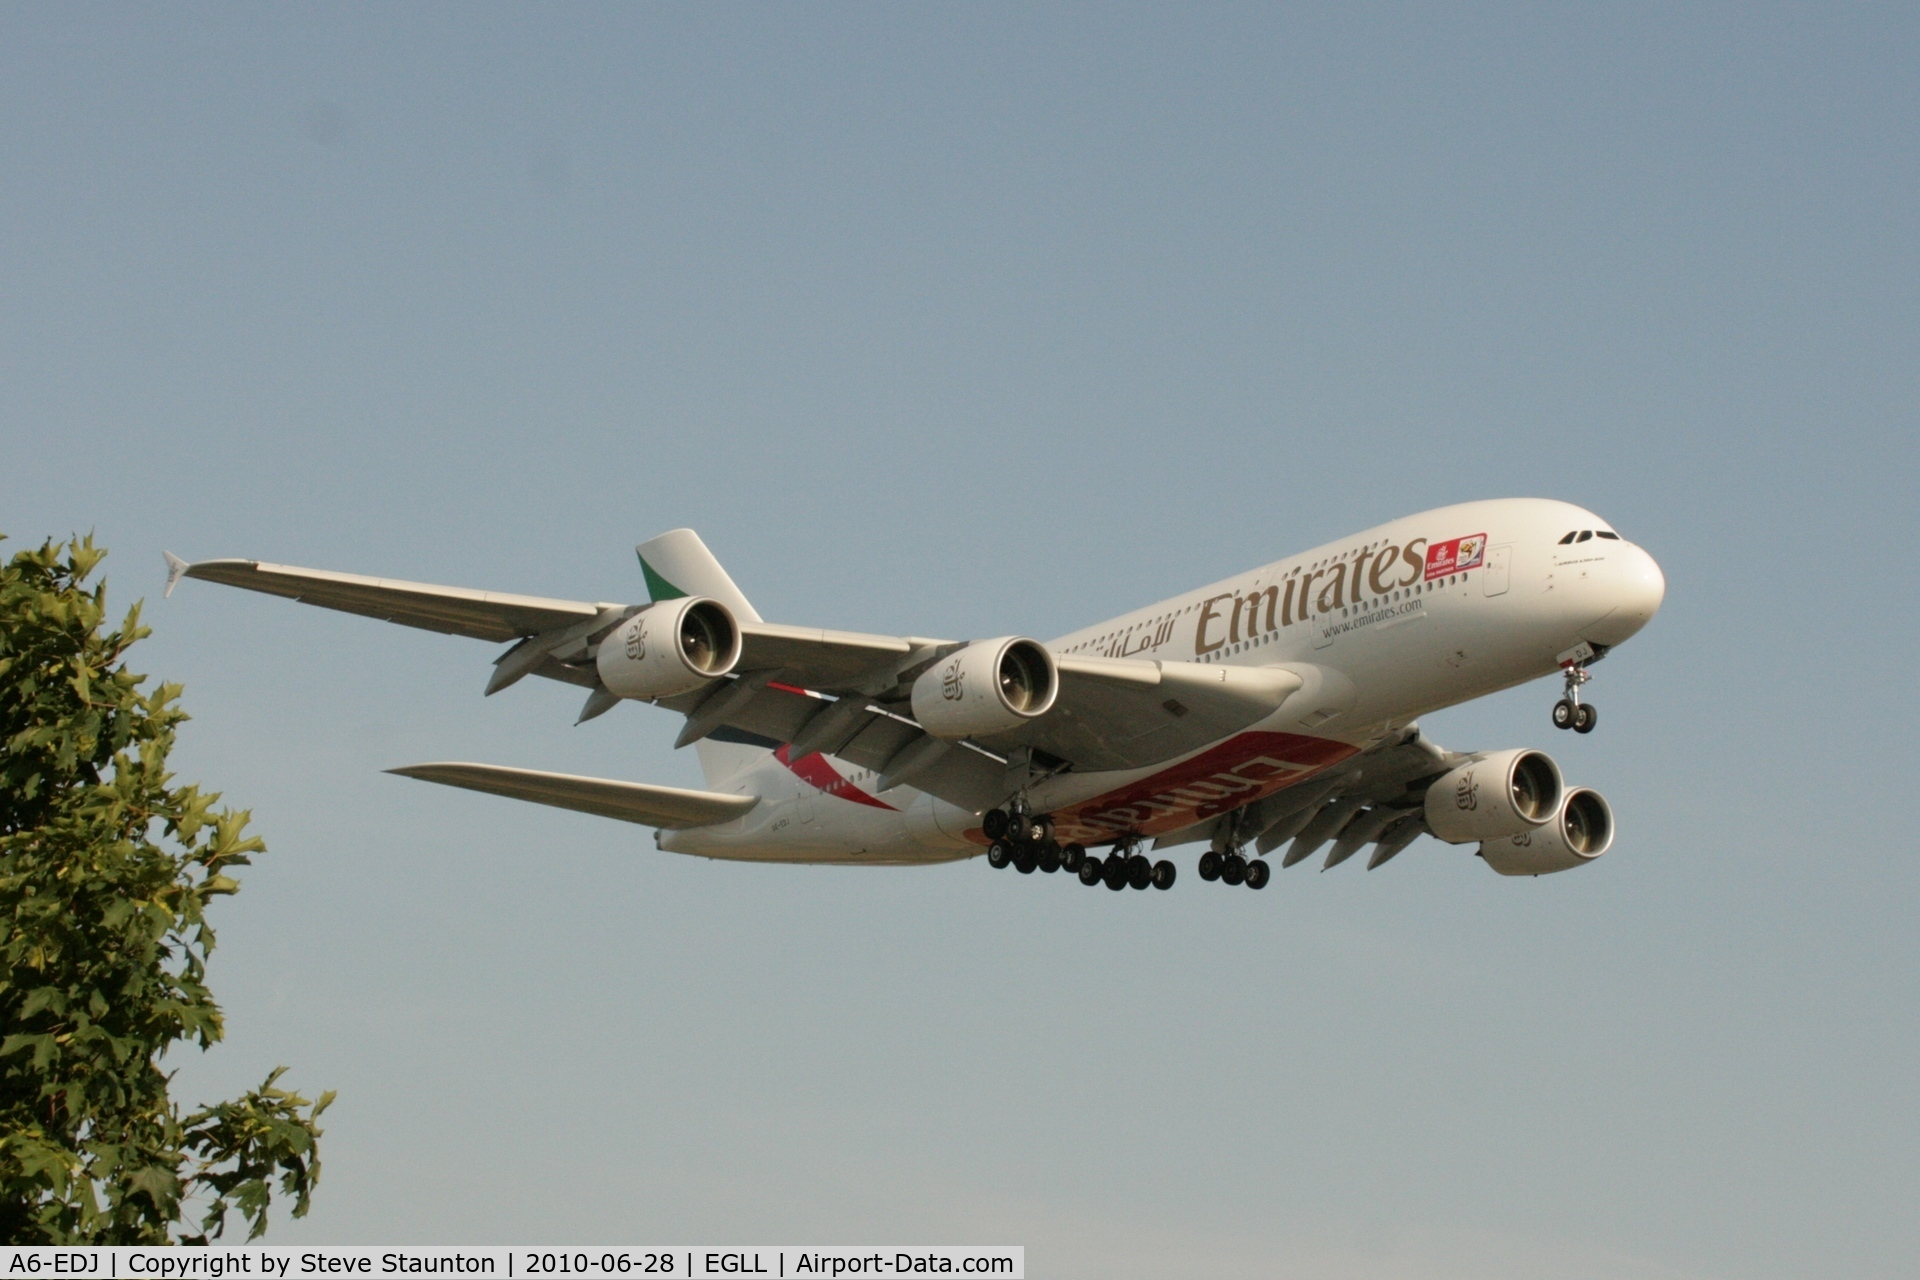 A6-EDJ, 2006 Airbus A380-861 C/N 009, Taken at Heathrow Airport, June 2010